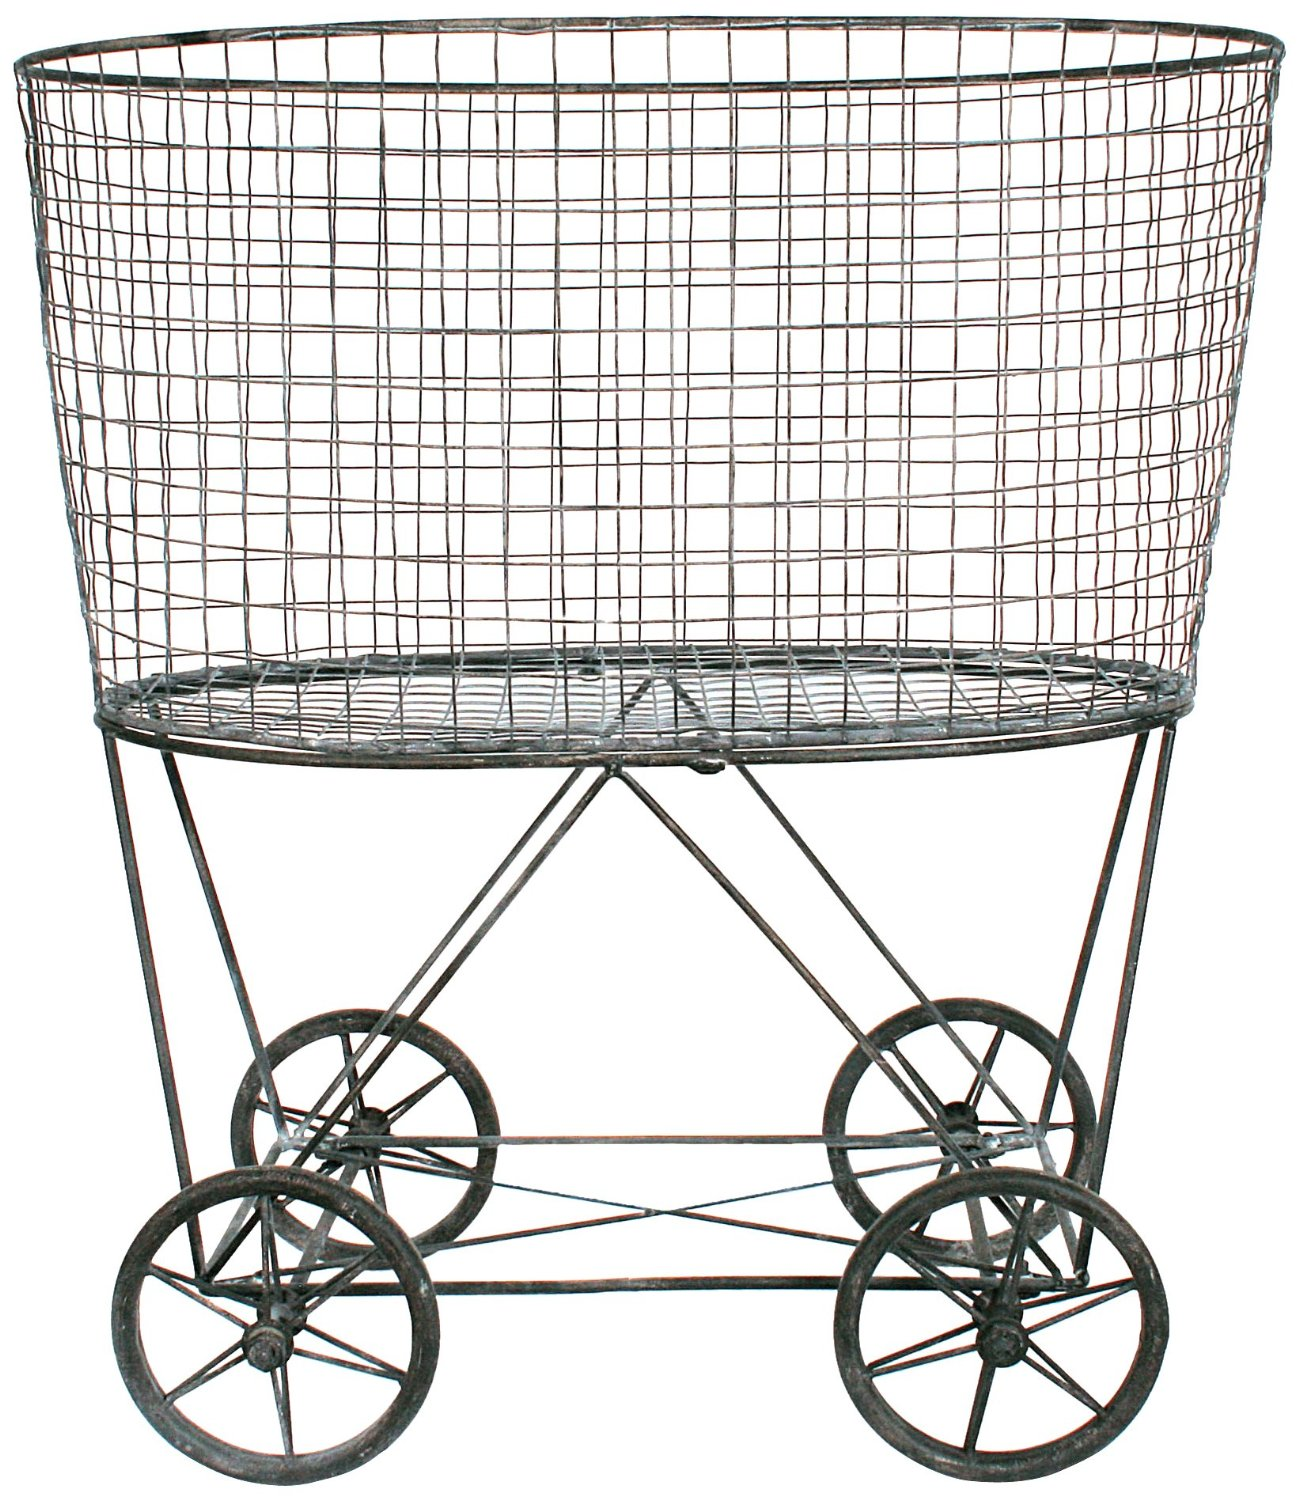 Steel Laundry Basket On Wheels Ideas (Image 6 of 10)